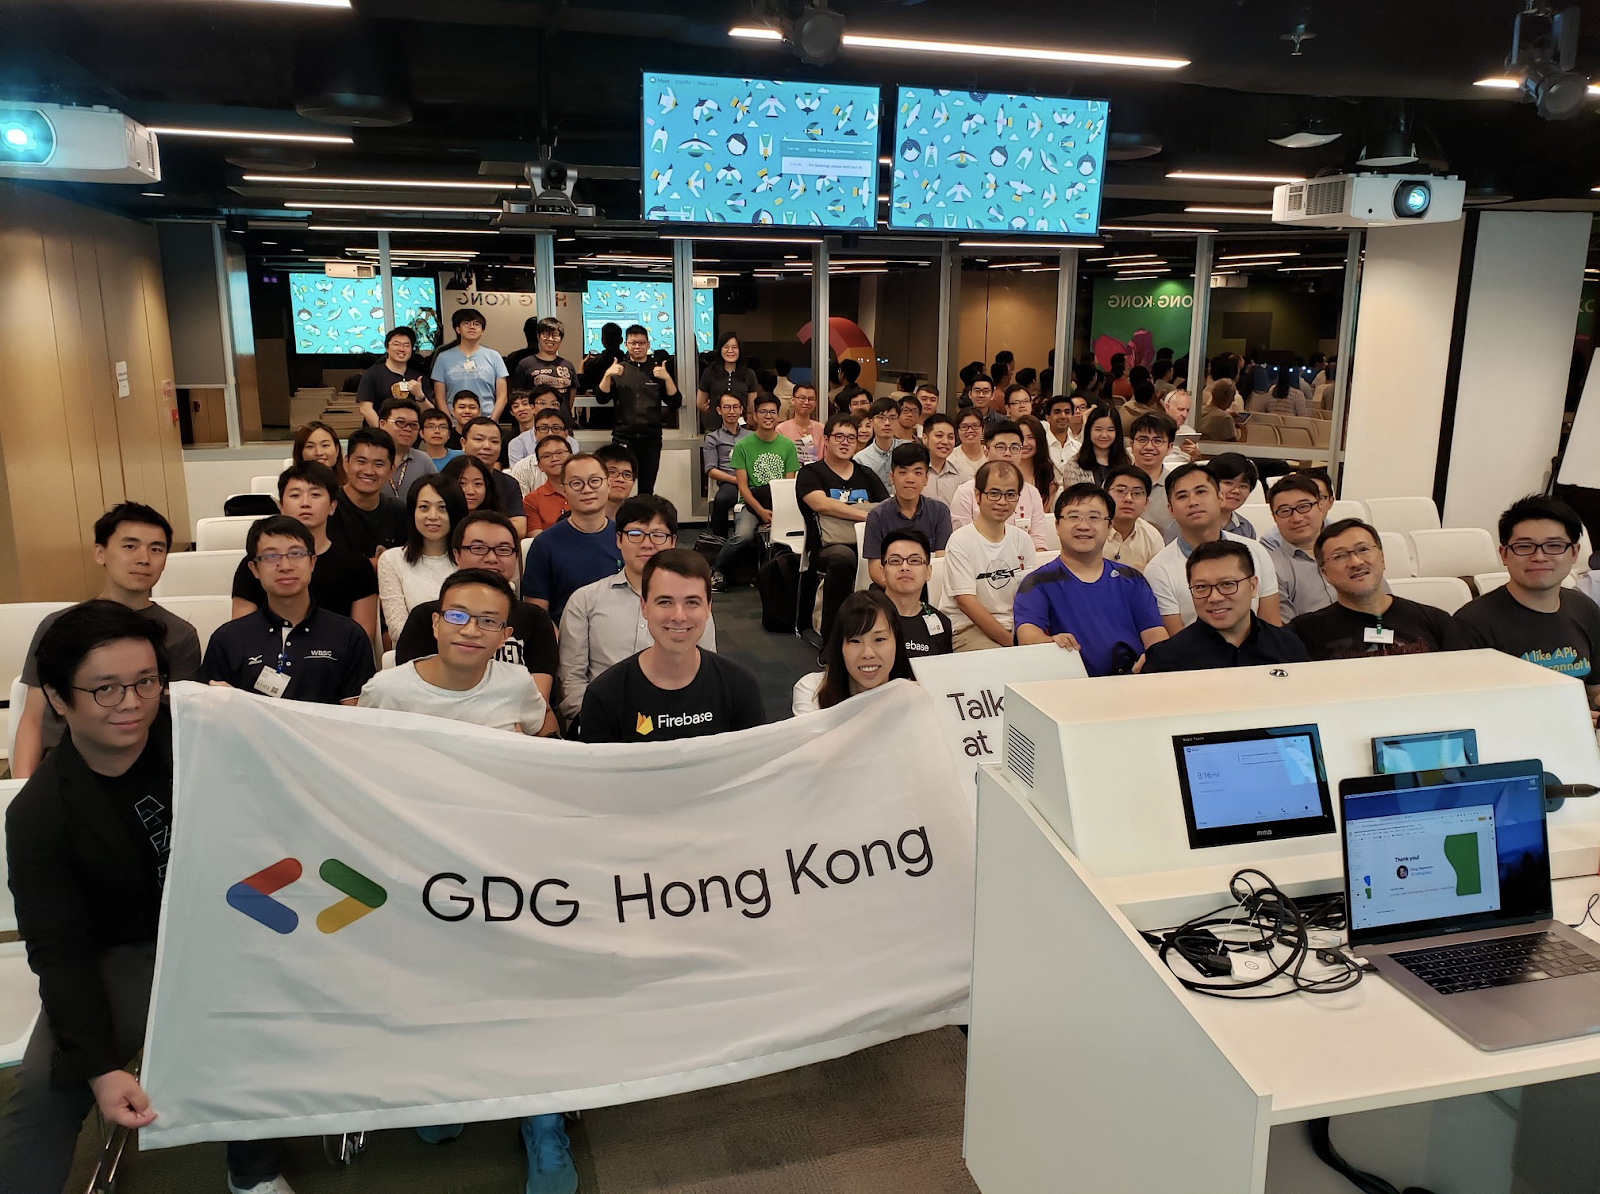 image from GDG developer community meetup in Hong Kong